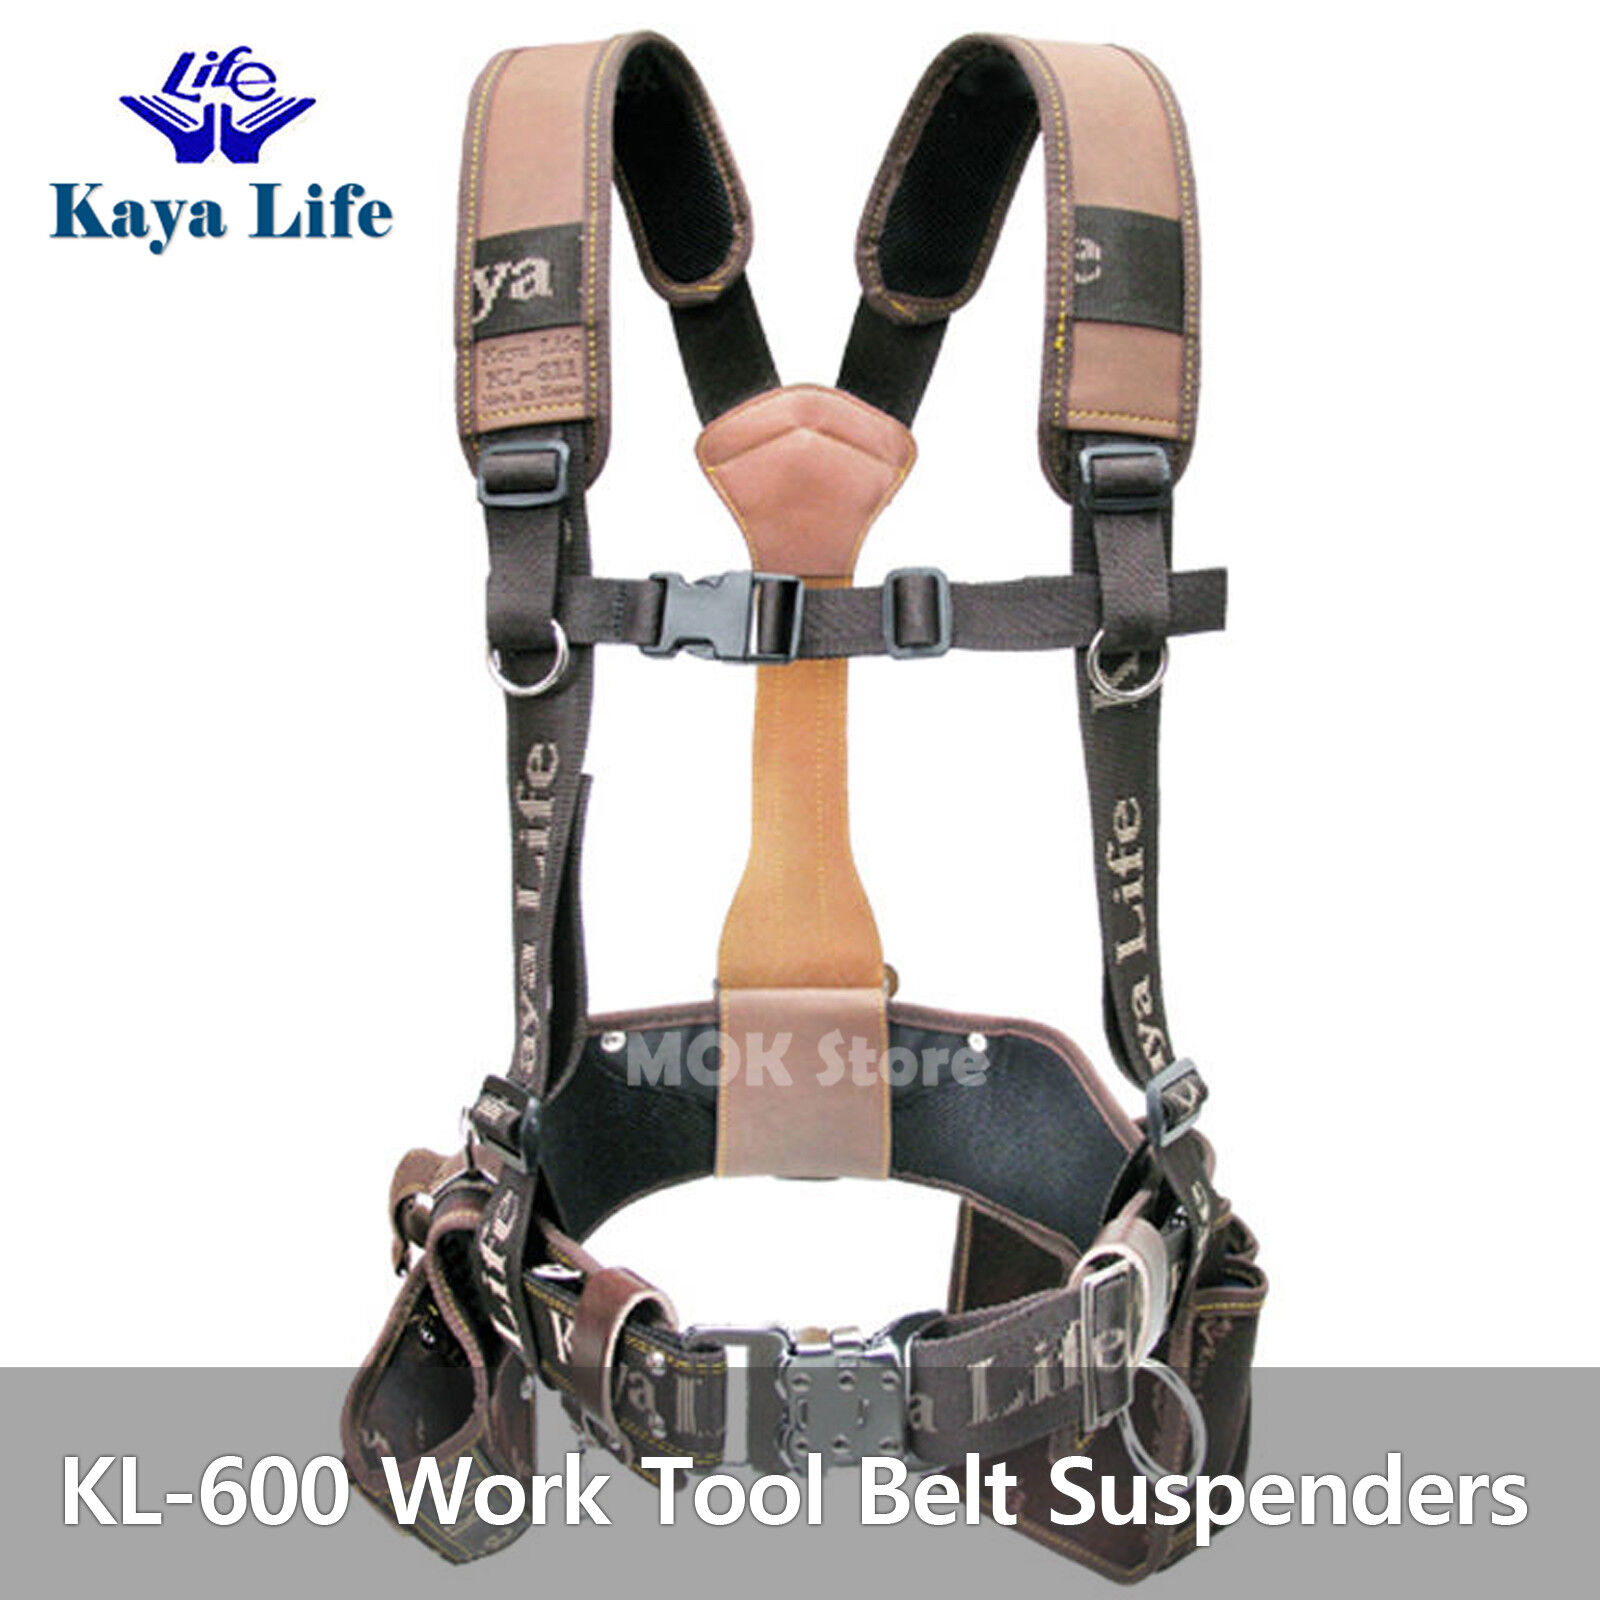 Kayalife Kl 600 Work Tool Belt Set Suspenders Drill Pouch Holder Made In Korea